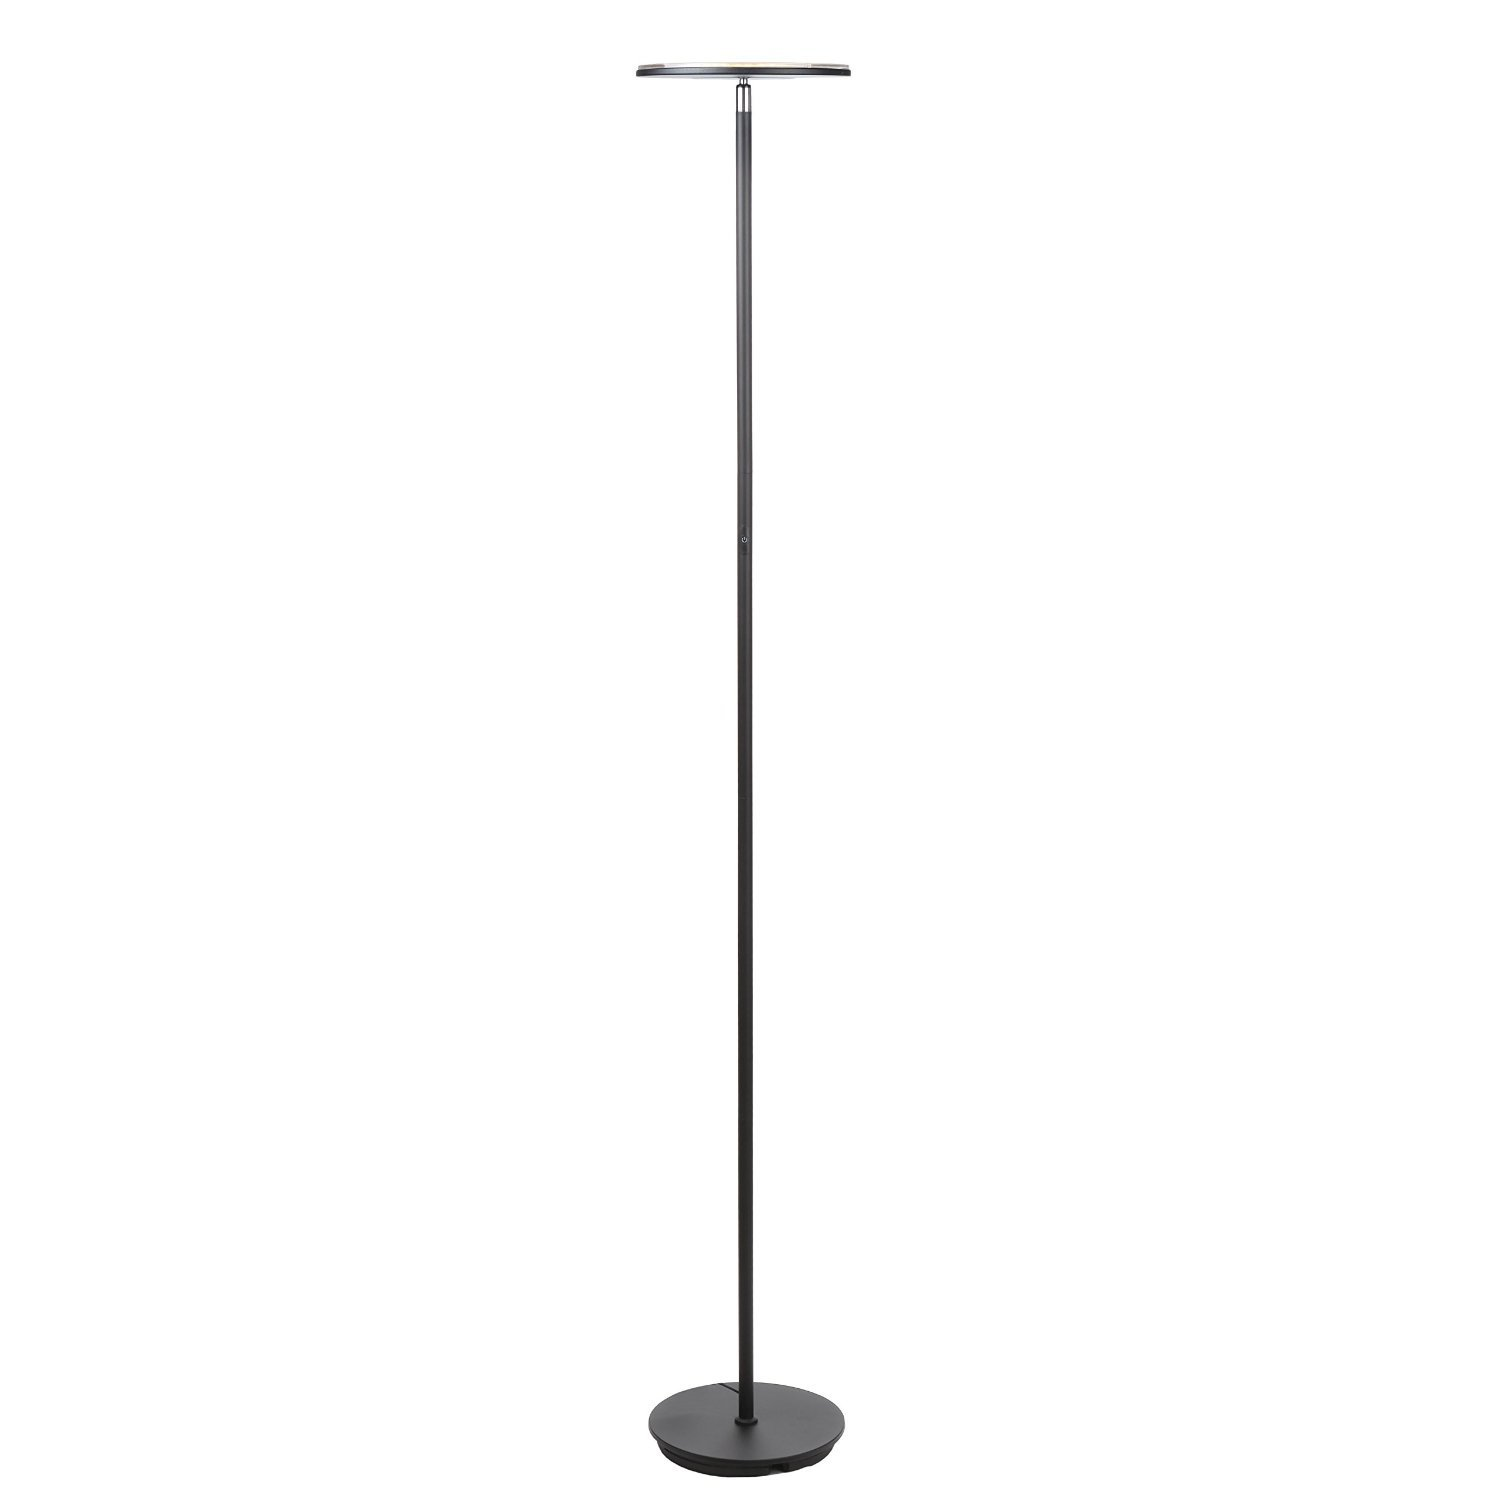 Brightech Sky Flux - Modern LED Torchiere Floor Lamp for Living Rooms & Bedrooms - Adjustable Warm to Cool White - Tall Pole, Standing Office Light - Bright, Minimalist & Contemporary Uplight - Black